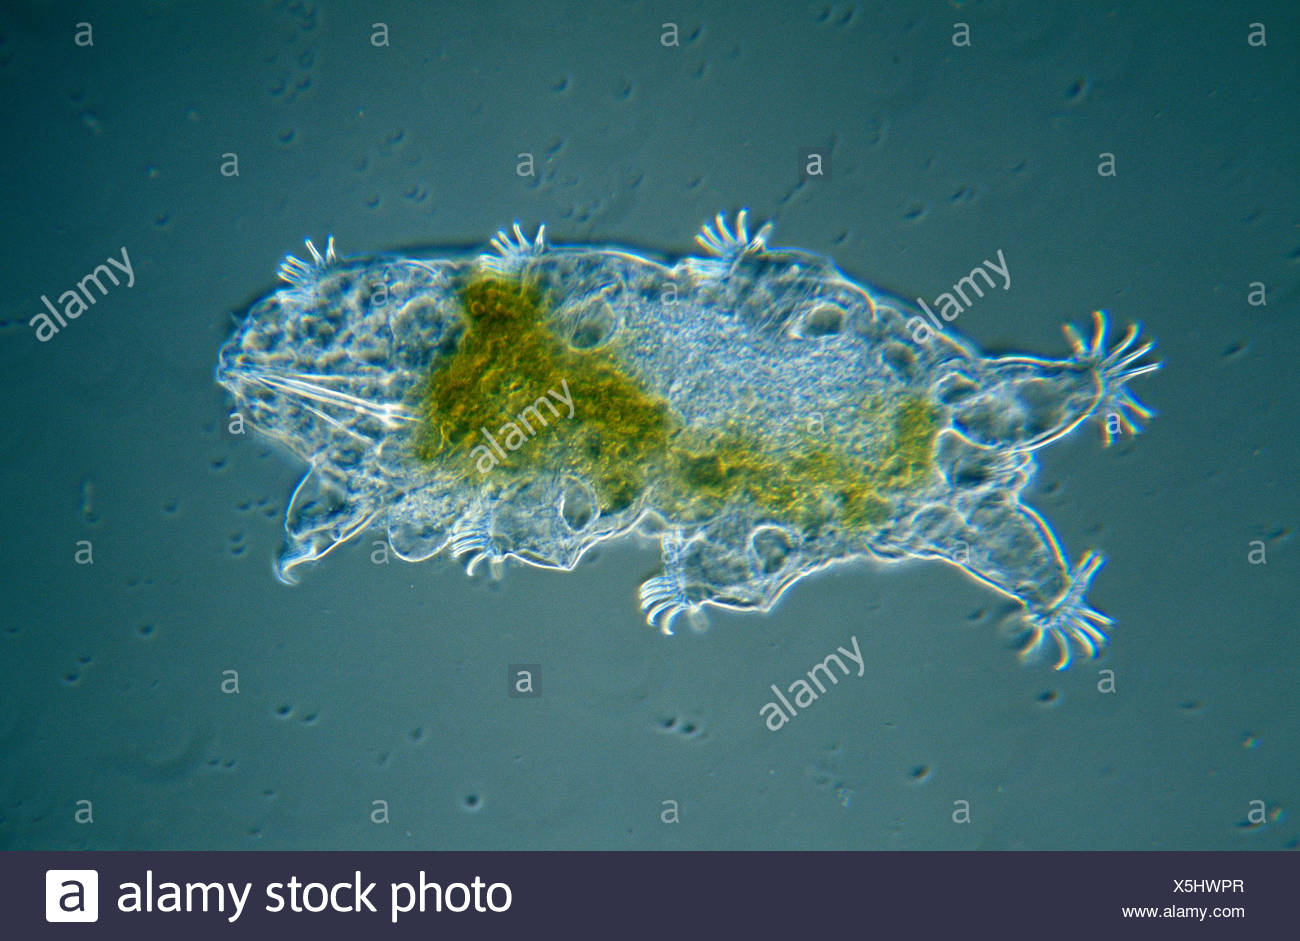 Tardigrade (Echiniscoides sigismundi) microscopic image, animal is less than one mm in length, can enter cryptobiosis to withstand temperature and moisture extremes - Stock Image